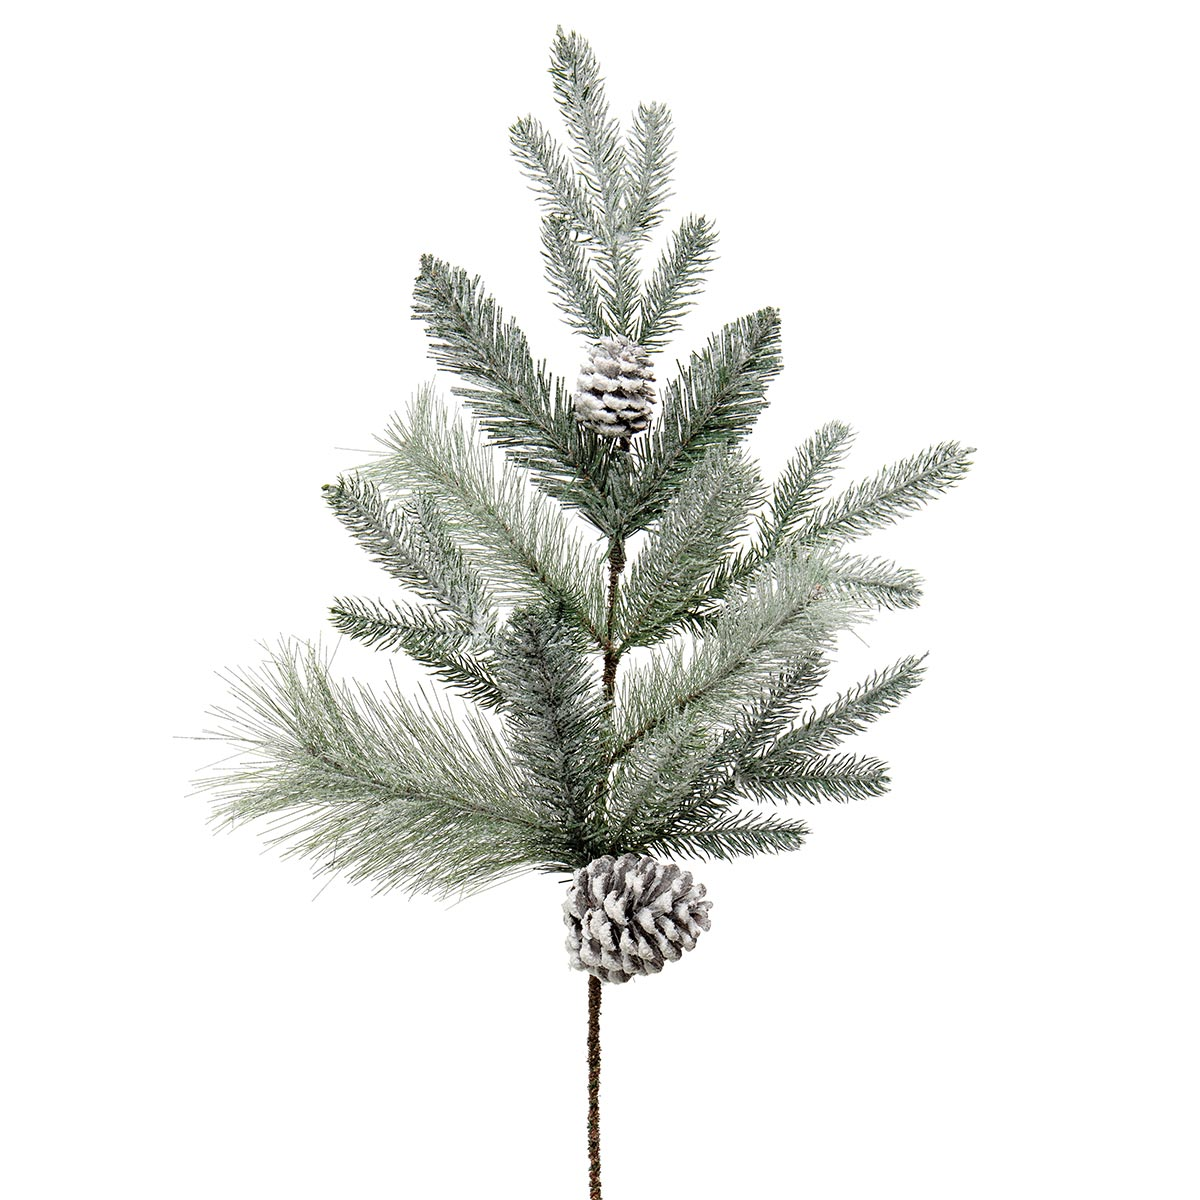 MAJESTIC FROSTED PINE SPRAY GREEN WITH PINECONES AND